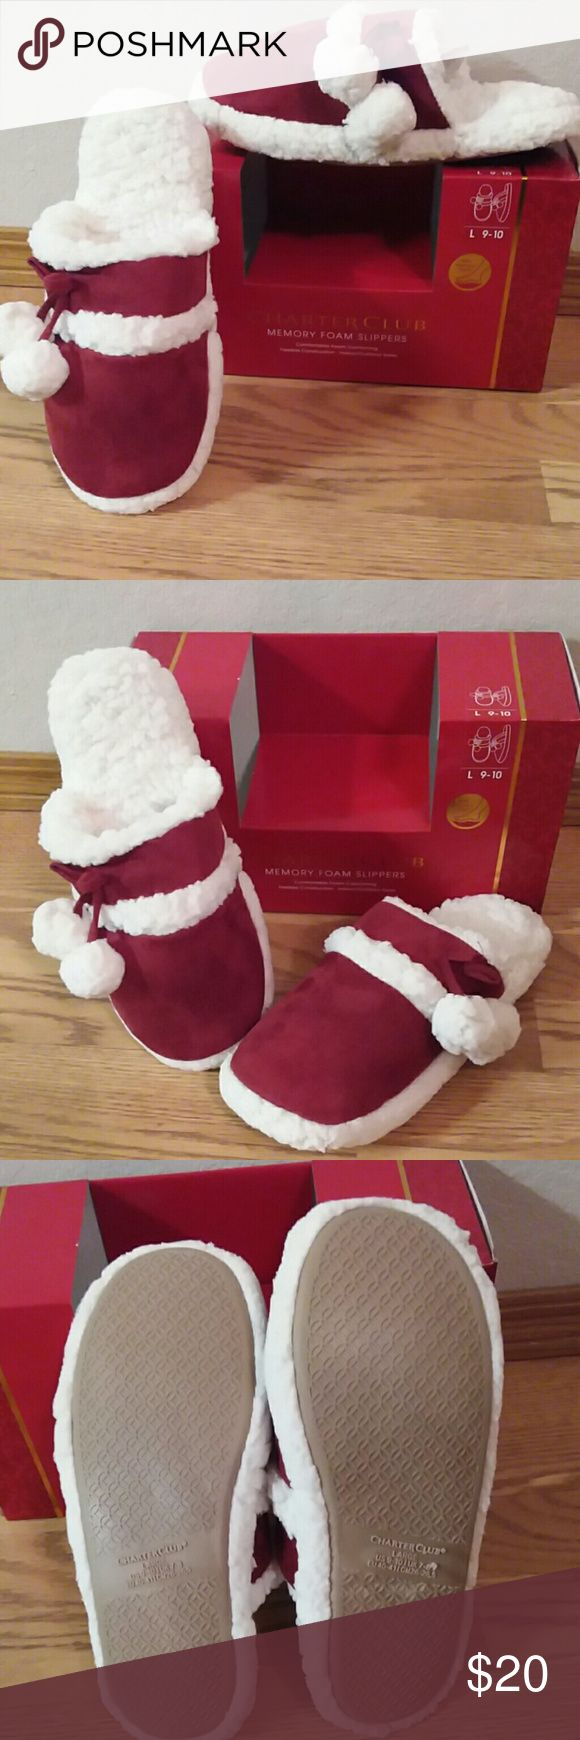 """Red Memory foam slippers Charter club memory foam slippers. Red suede, white fur. Faux fur.  Comfortable foam cushioning, flexible construction,  indoor / outdoor soles. Ultimate comfort. Slip resistant outsole for better traction.  High density foam makes every step soft and comfortable. From toe to heal they are 11"""" long.    NEW Charter Club Shoes Slippers"""